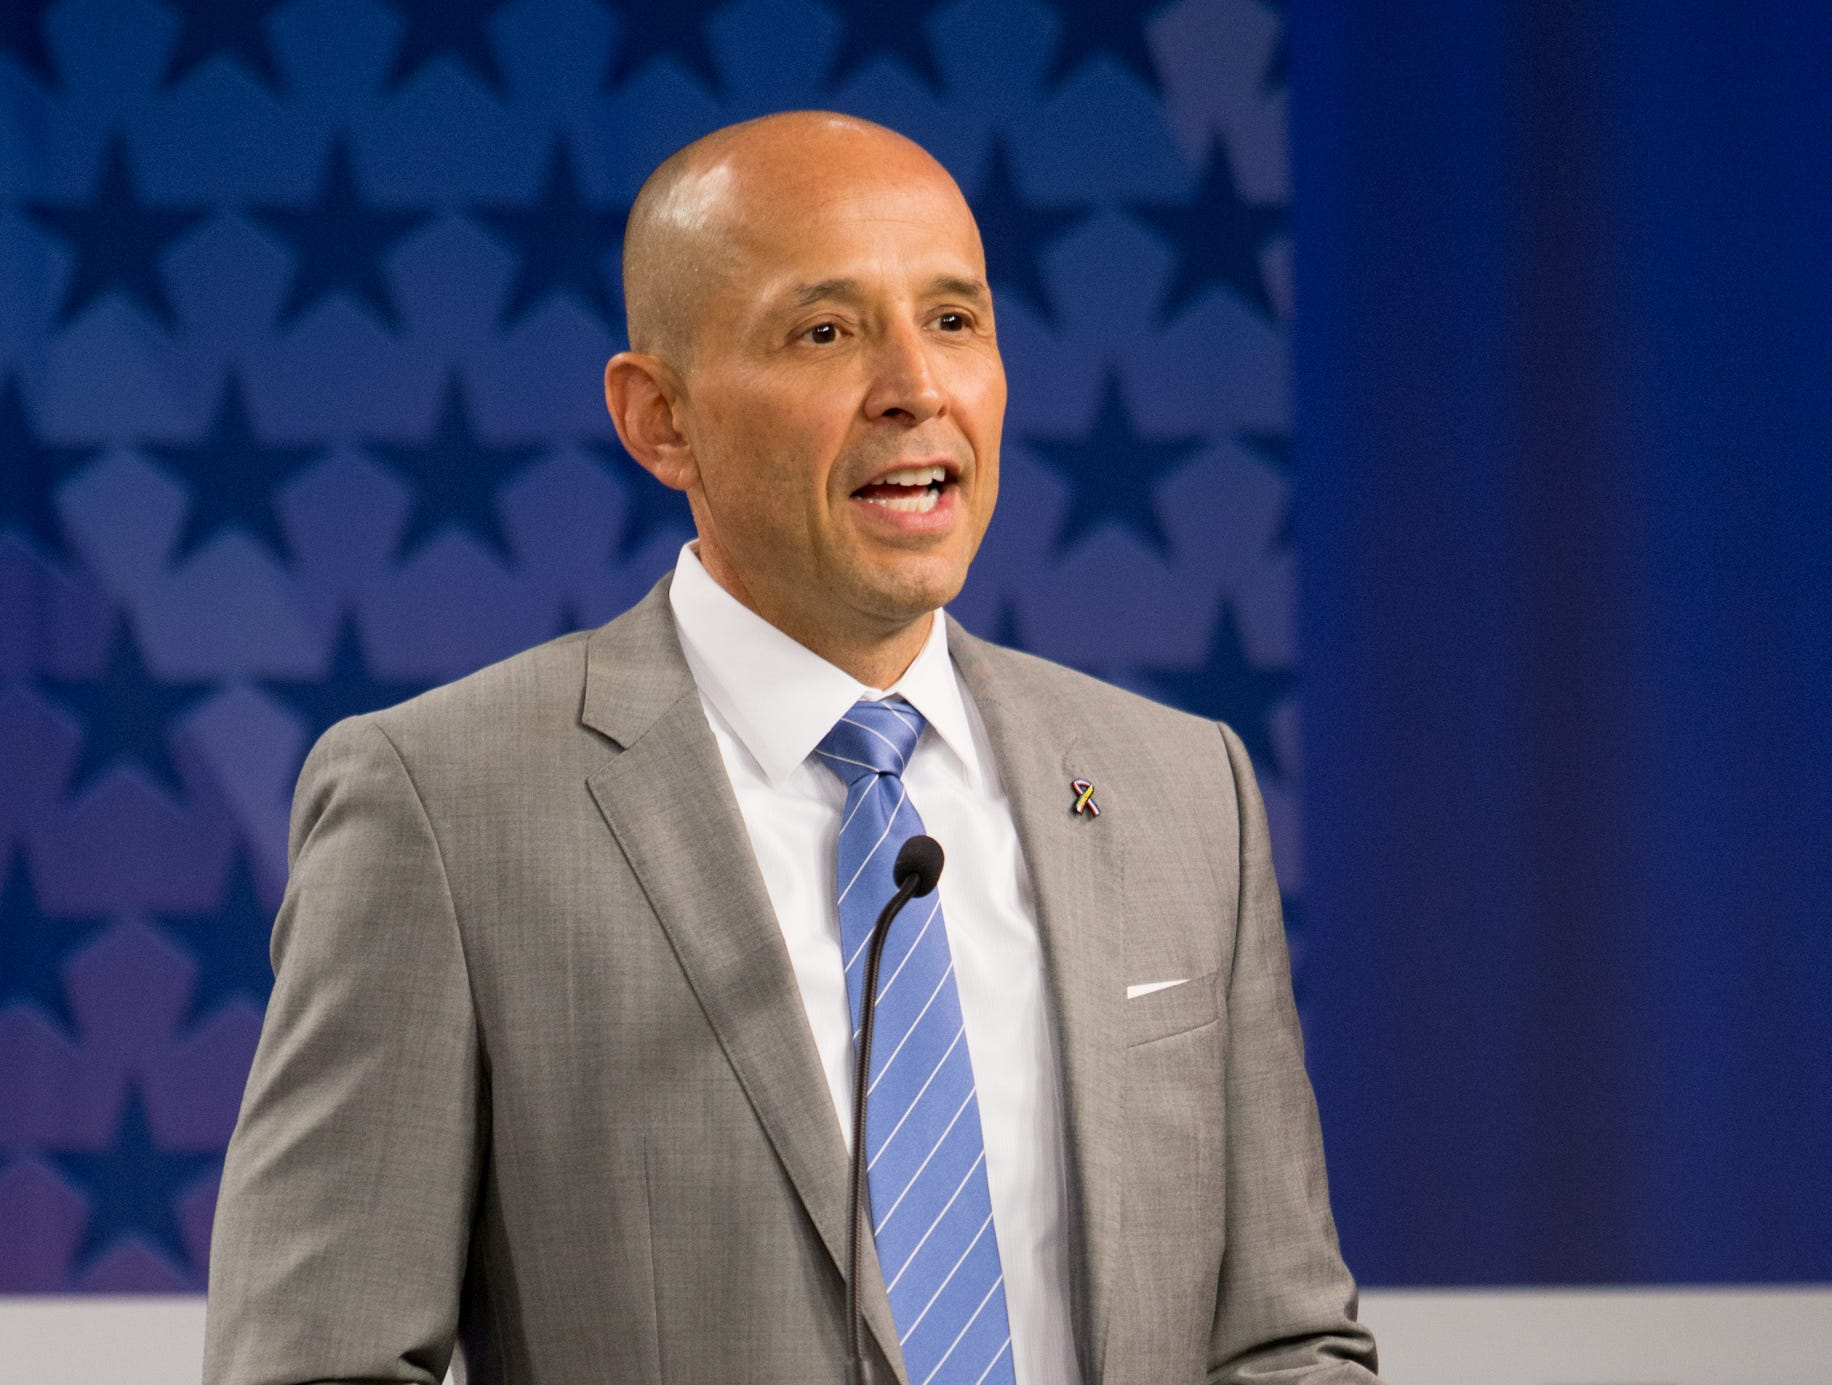 Gubernatorial candidate David Garcia speaks during a debate among Democrats vying to be the next Arizona governor at Arizona State University's Walter Cronkite School of Journalism in Phoenix.